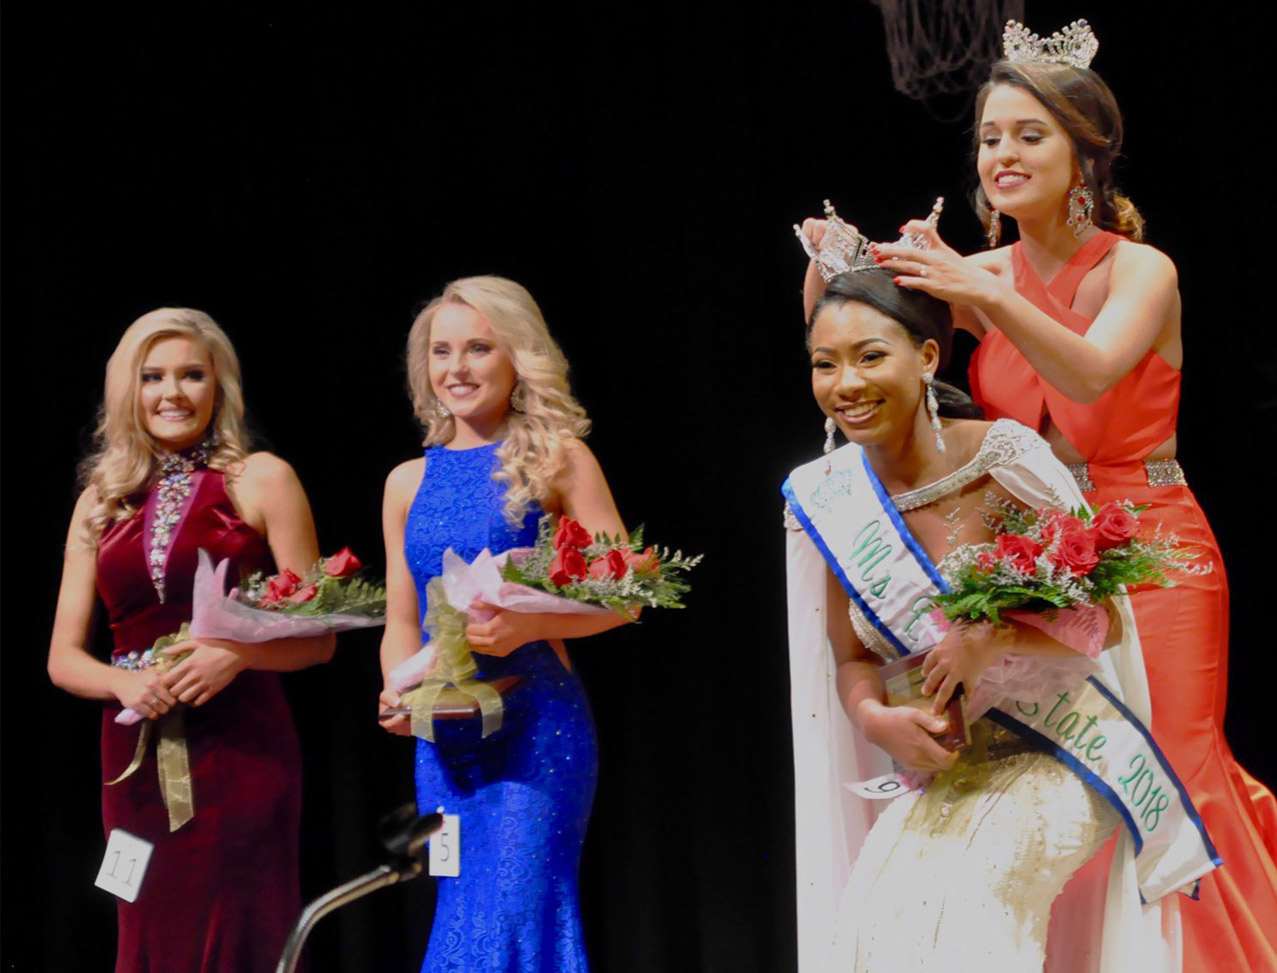 Former pageant queen crowning the current Ms. Bevill State 2018 with runner-ups smiling in the background